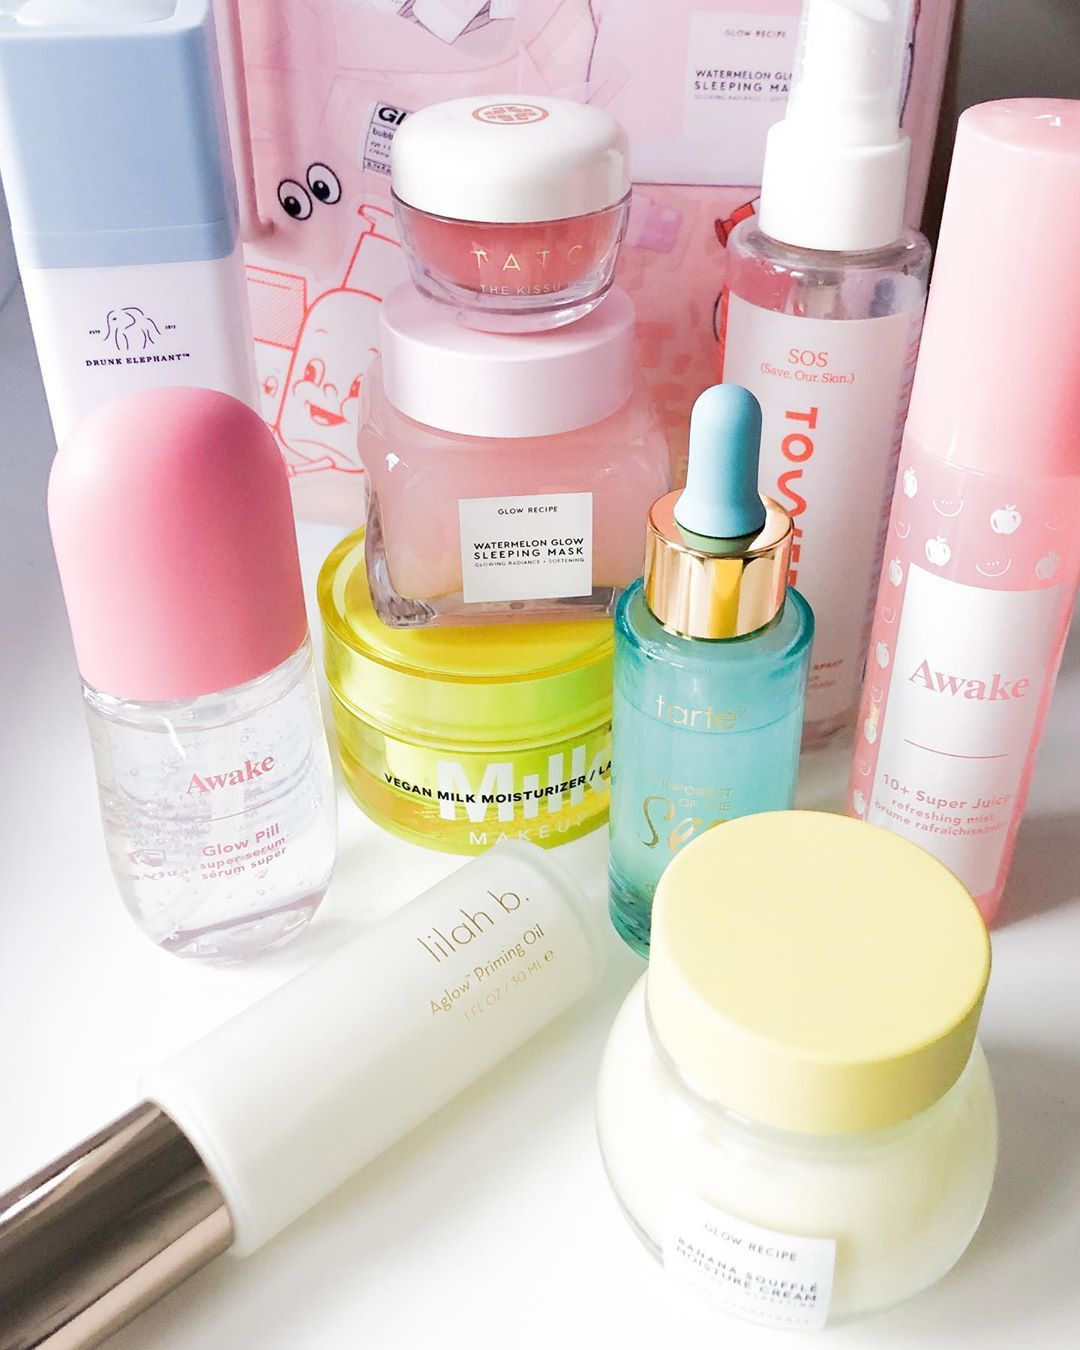 Beauty Blogger On Instagram Some Holy Grails And Some New Skincare Goodies In 2020 Beauty Skin Care Routine Night Skin Care Routine Skin Care